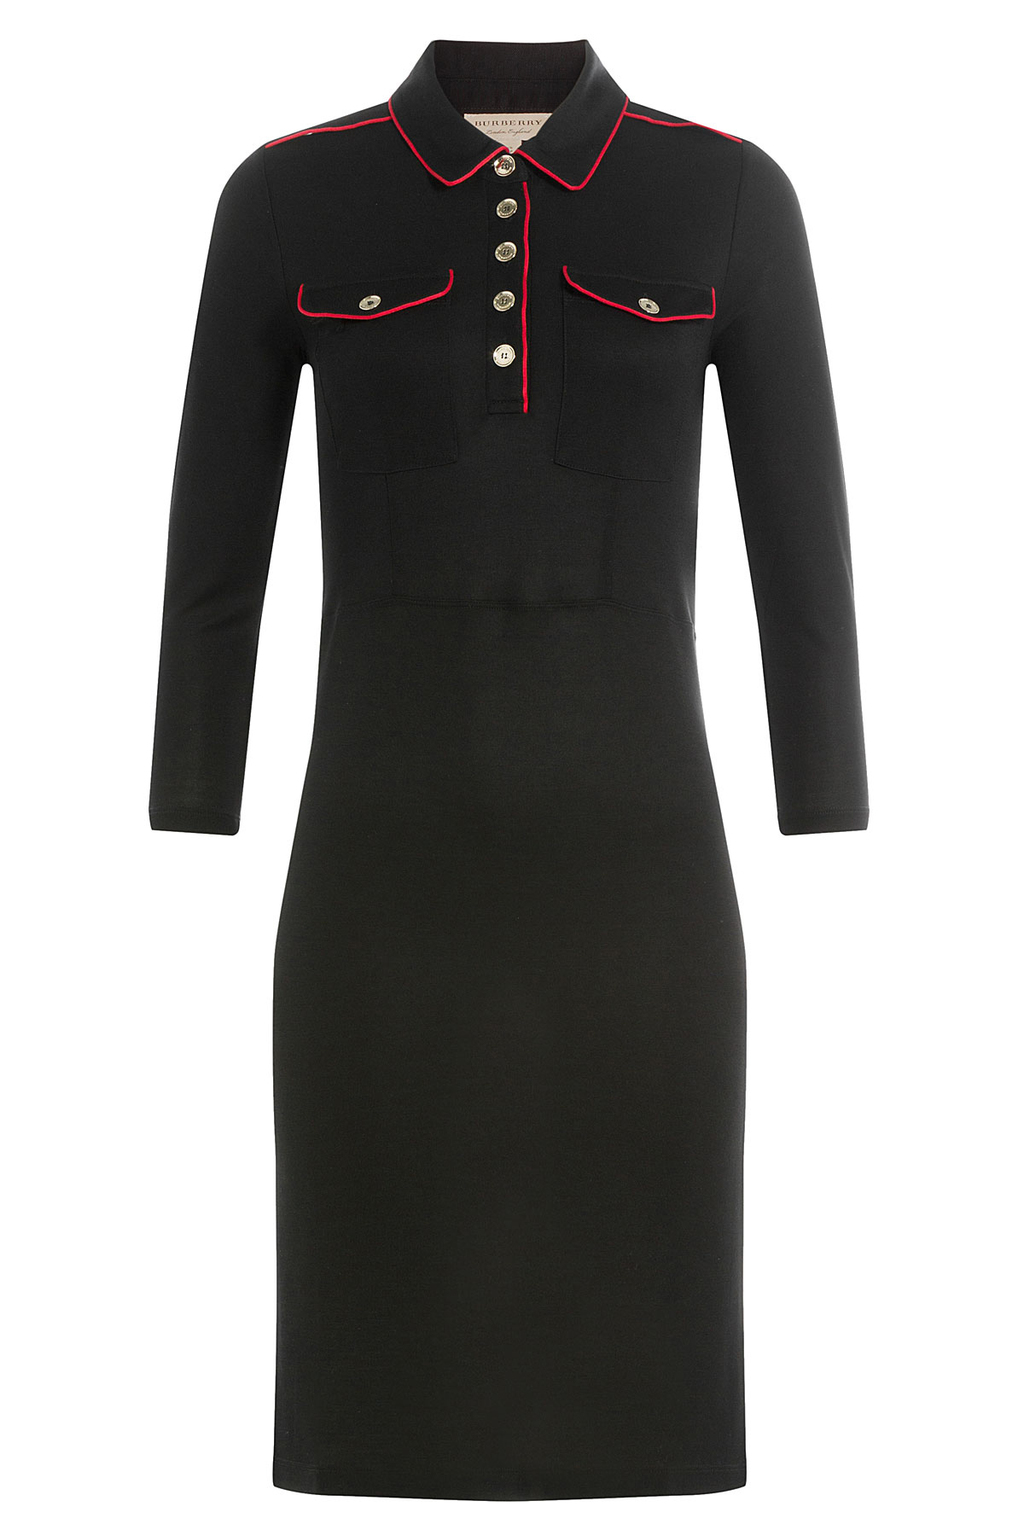 Dress With Contrast Piping - length: below the knee; neckline: shirt collar/peter pan/zip with opening; fit: tight; pattern: plain; style: bodycon; predominant colour: black; occasions: evening; fibres: viscose/rayon - 100%; sleeve length: long sleeve; sleeve style: standard; texture group: jersey - clingy; pattern type: fabric; season: a/w 2016; wardrobe: event